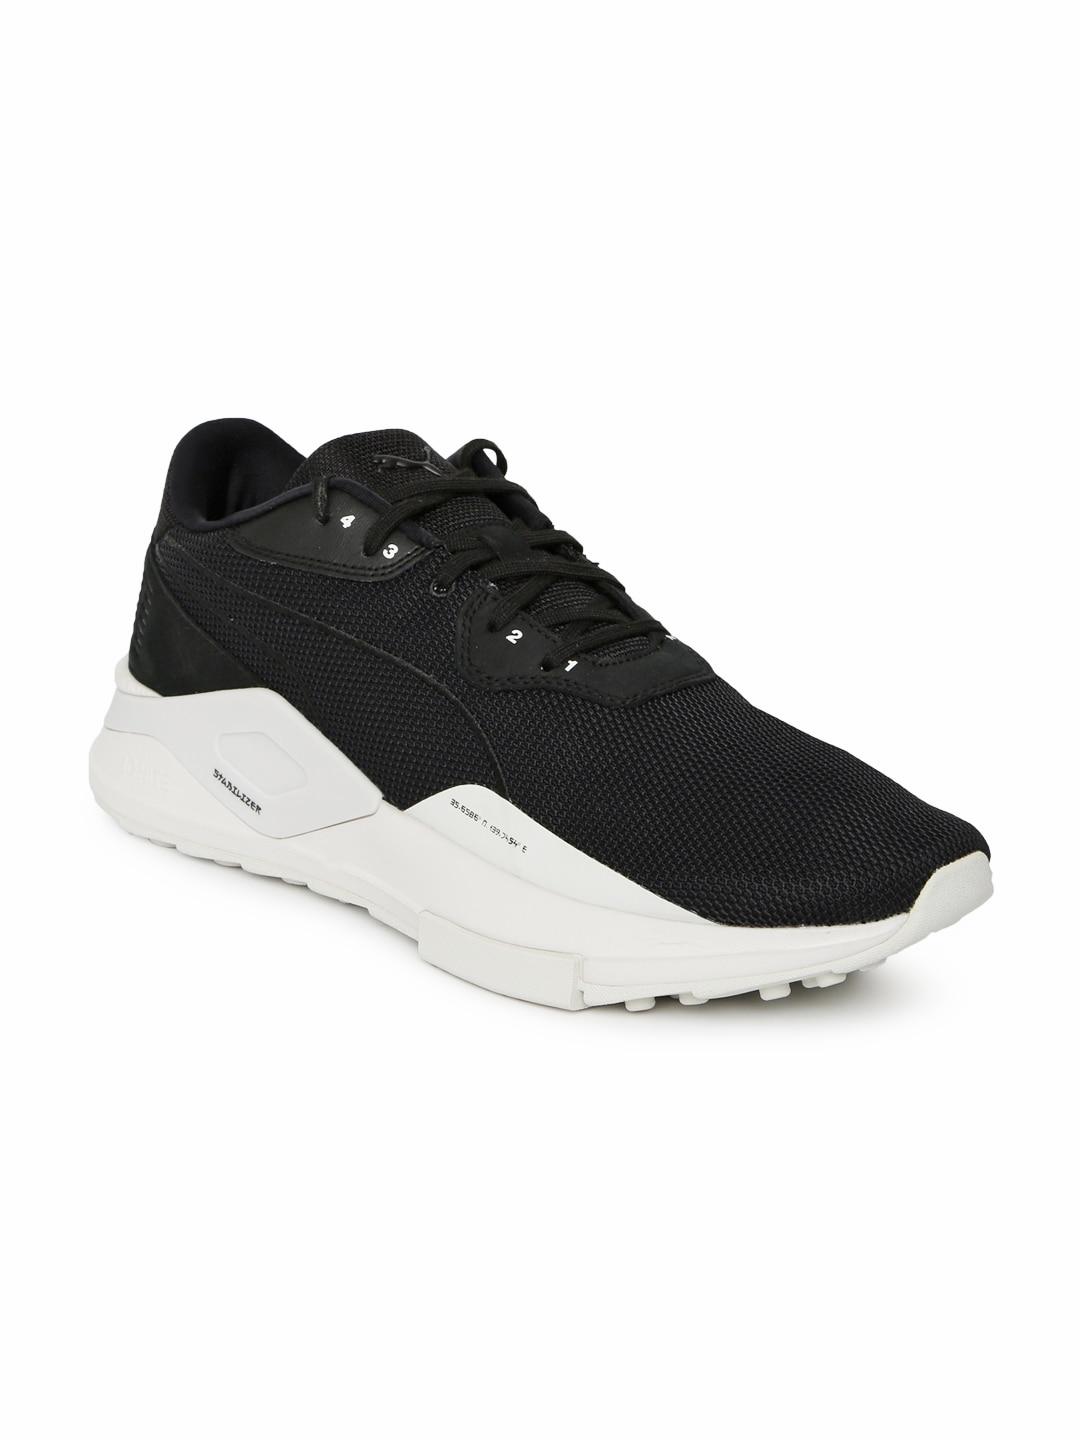 0ff4e38dd8 Shoe Women Puma Casual Shoes - Buy Shoe Women Puma Casual Shoes online in  India